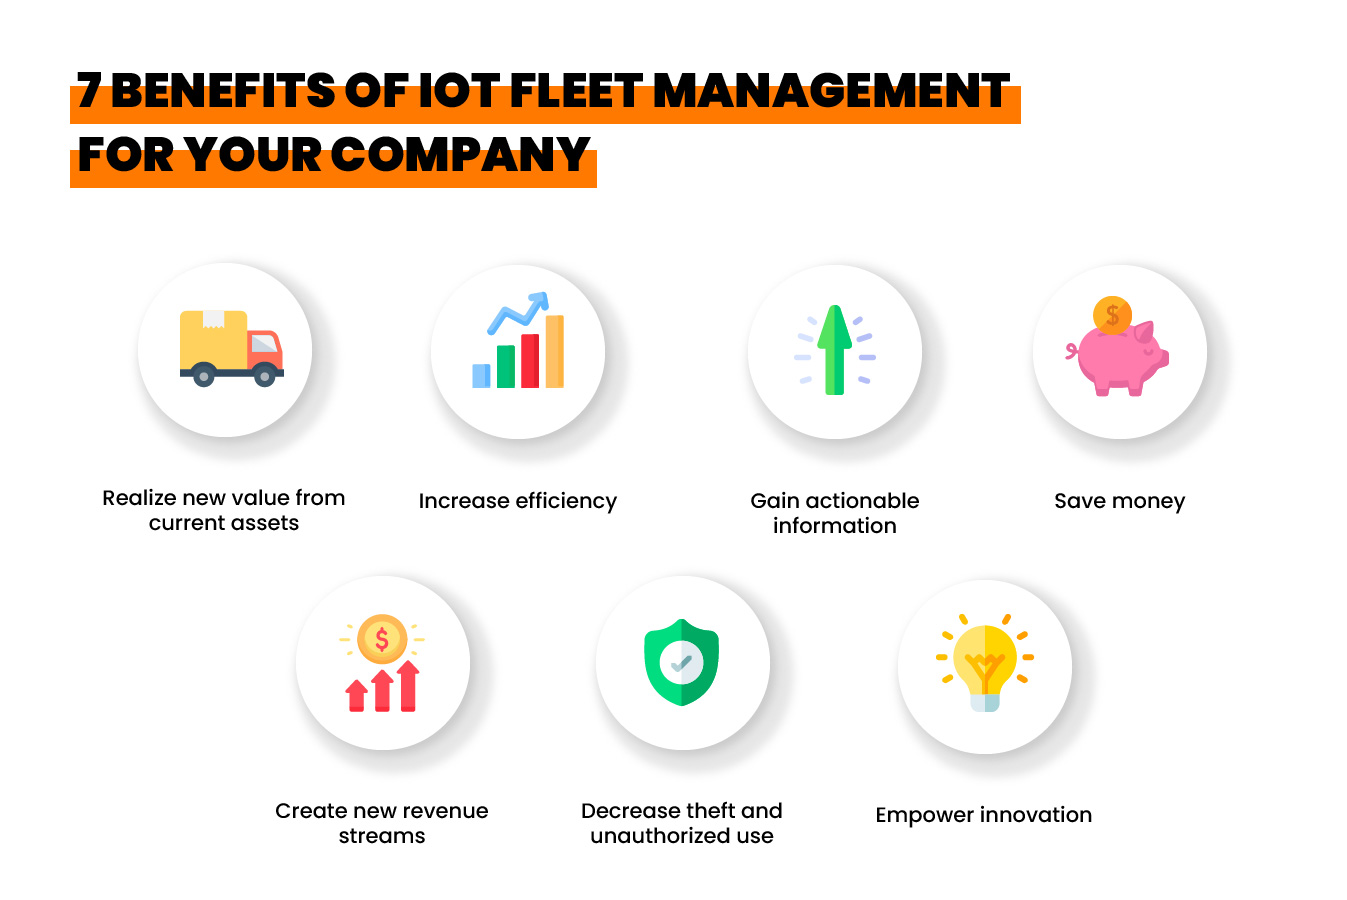 benefits of internet of thing iot in fleet, what is the role of iot in fleet management